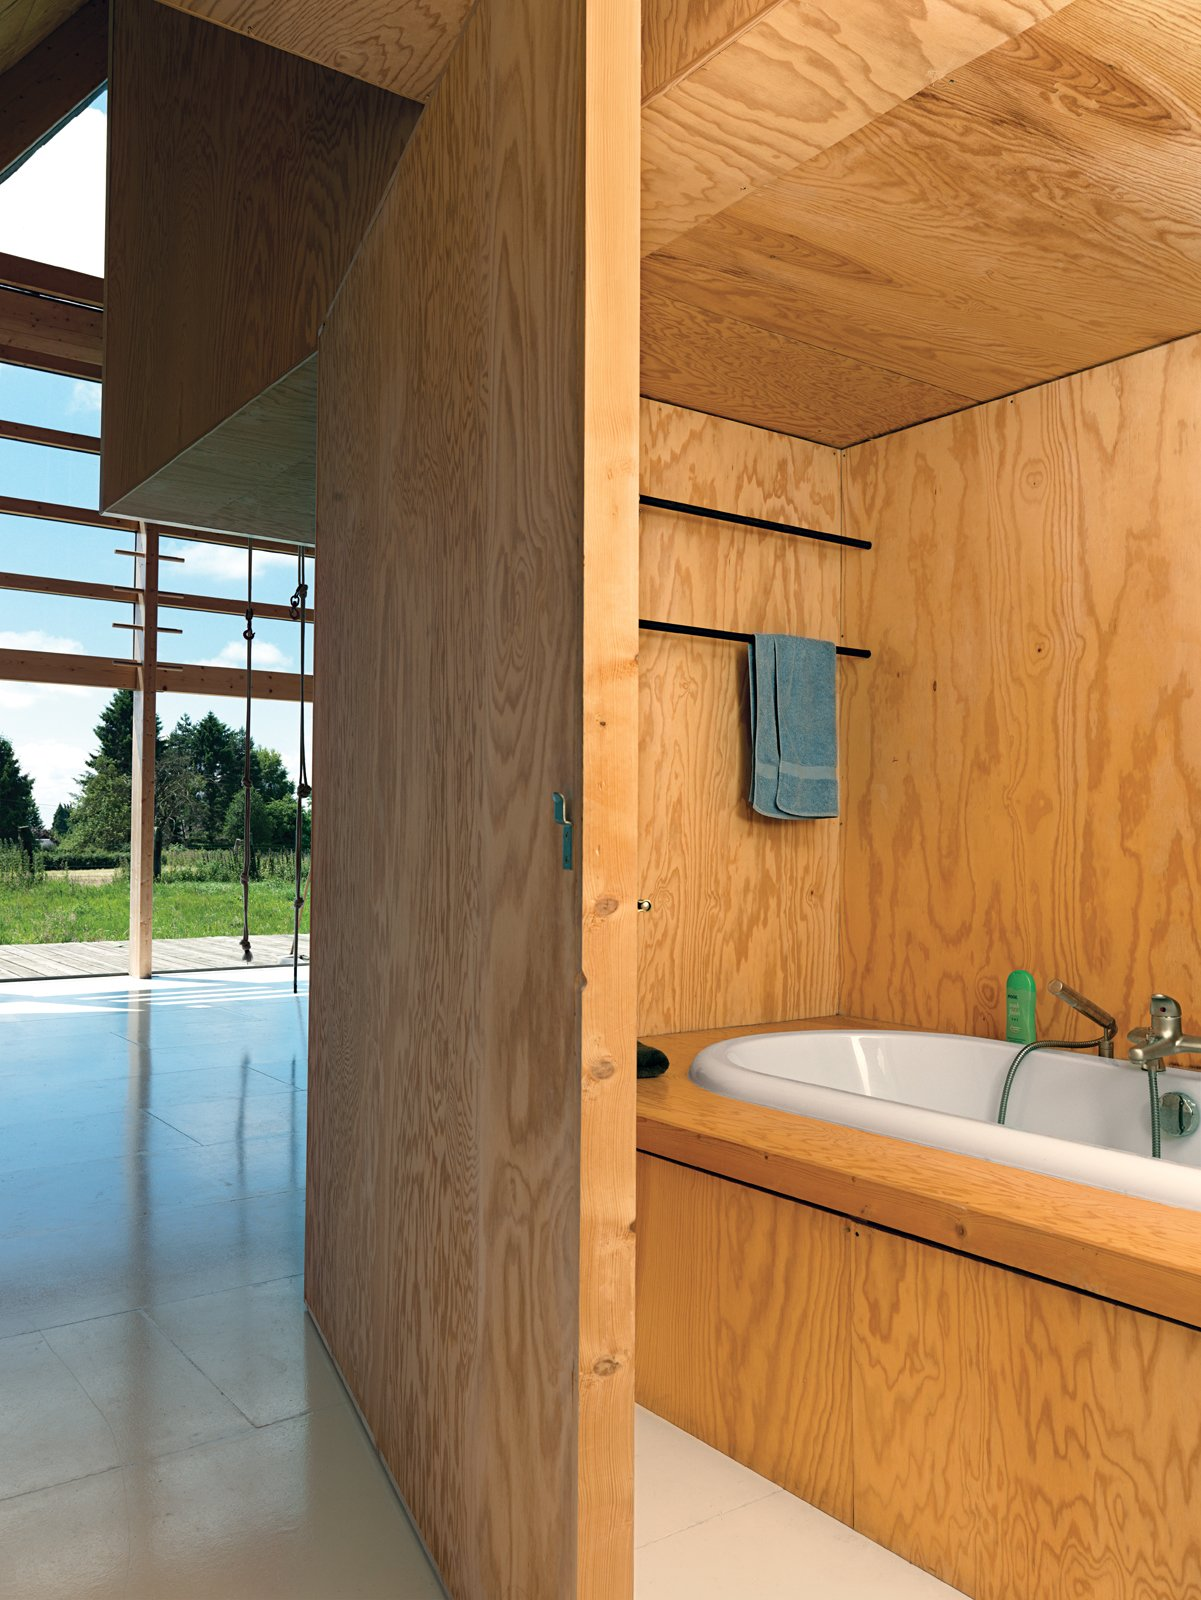 Bath Room and Drop In Tub Cubic bookshelves do double duty as a dividing wall and as a sliding door opening up to a hidden bath.  Photo 3 of 11 in Modern Wooden A-Frame Retreat in France